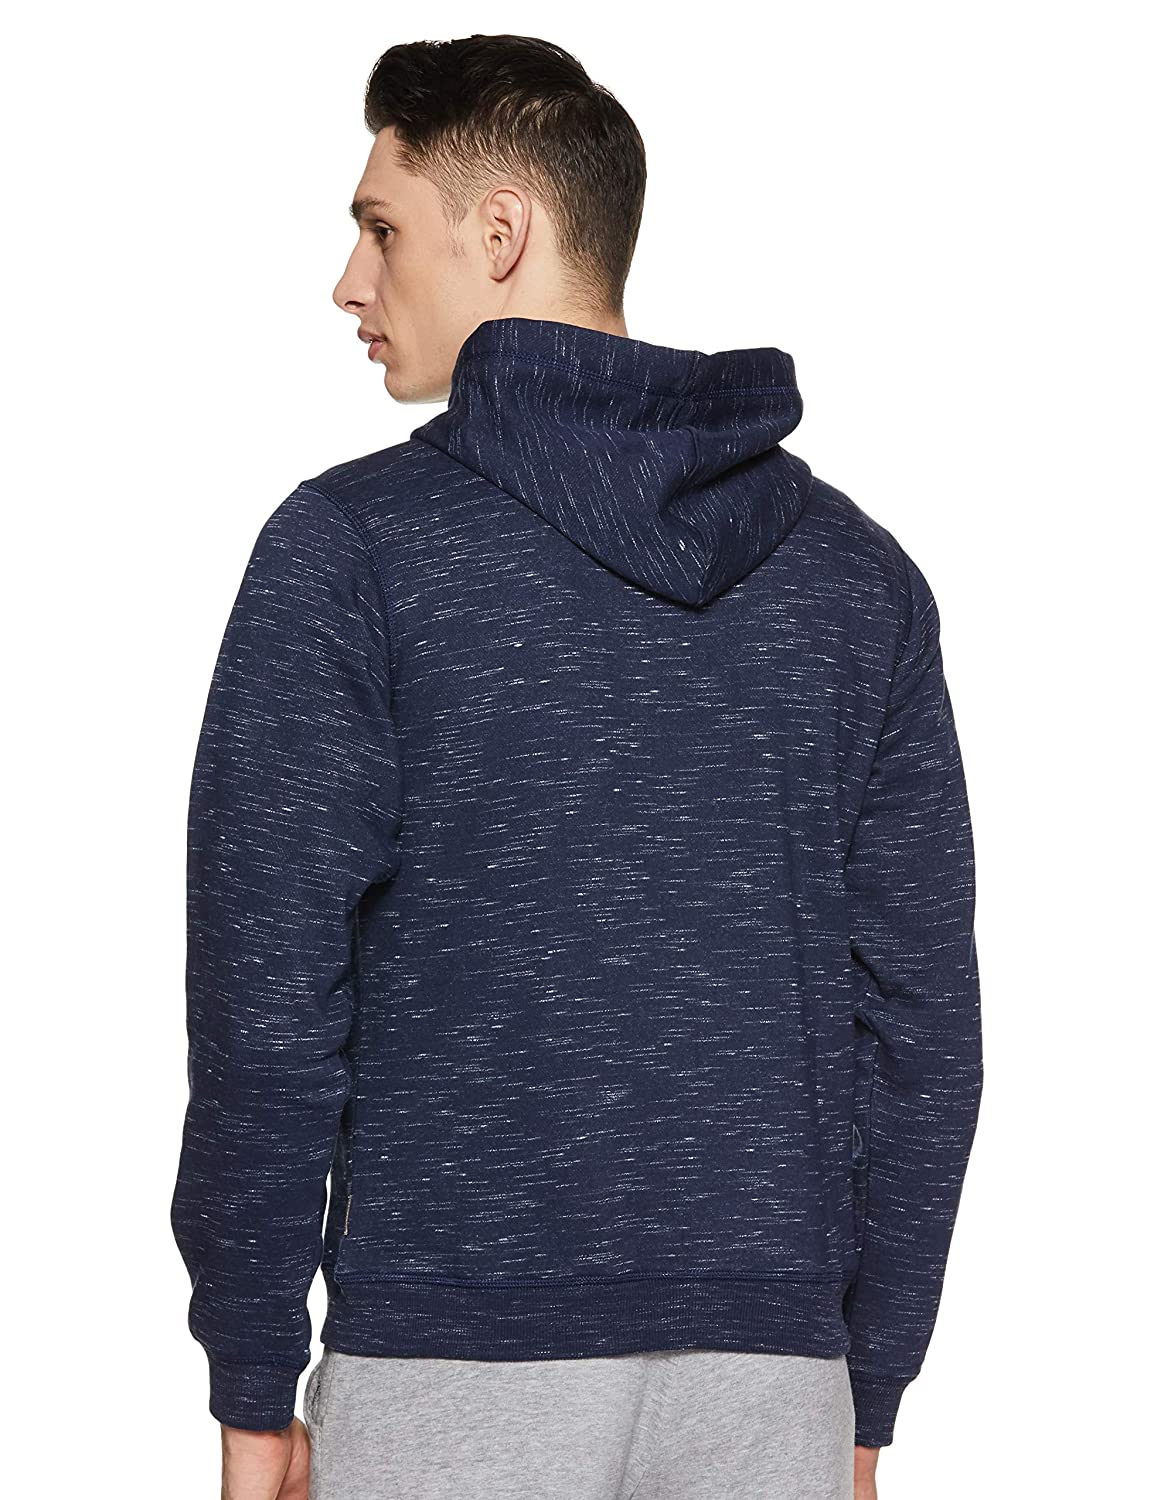 Buy Flying Machine Clothes at Huge Discounts Upto 45% For Mens Sweatshirts  Online